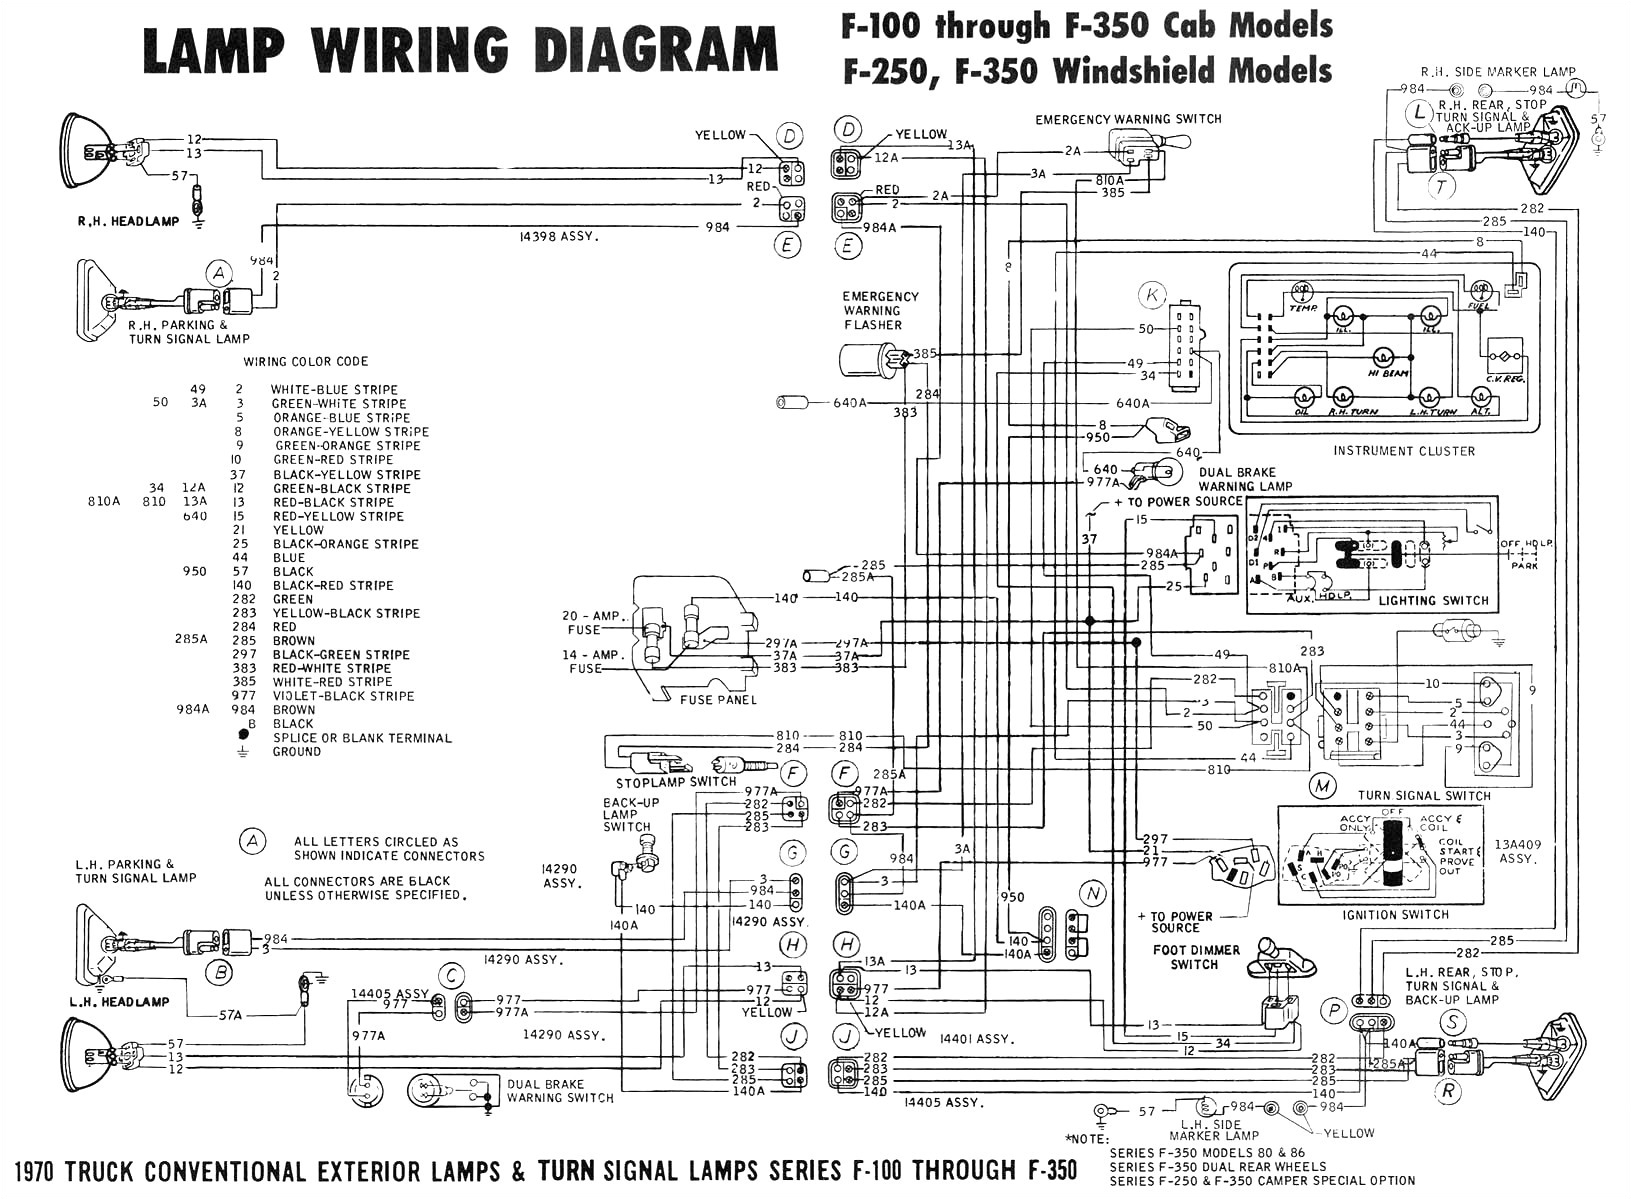 ford abs wiring harness data schematic diagram 2014 ford mustang abs wiring harness diagram